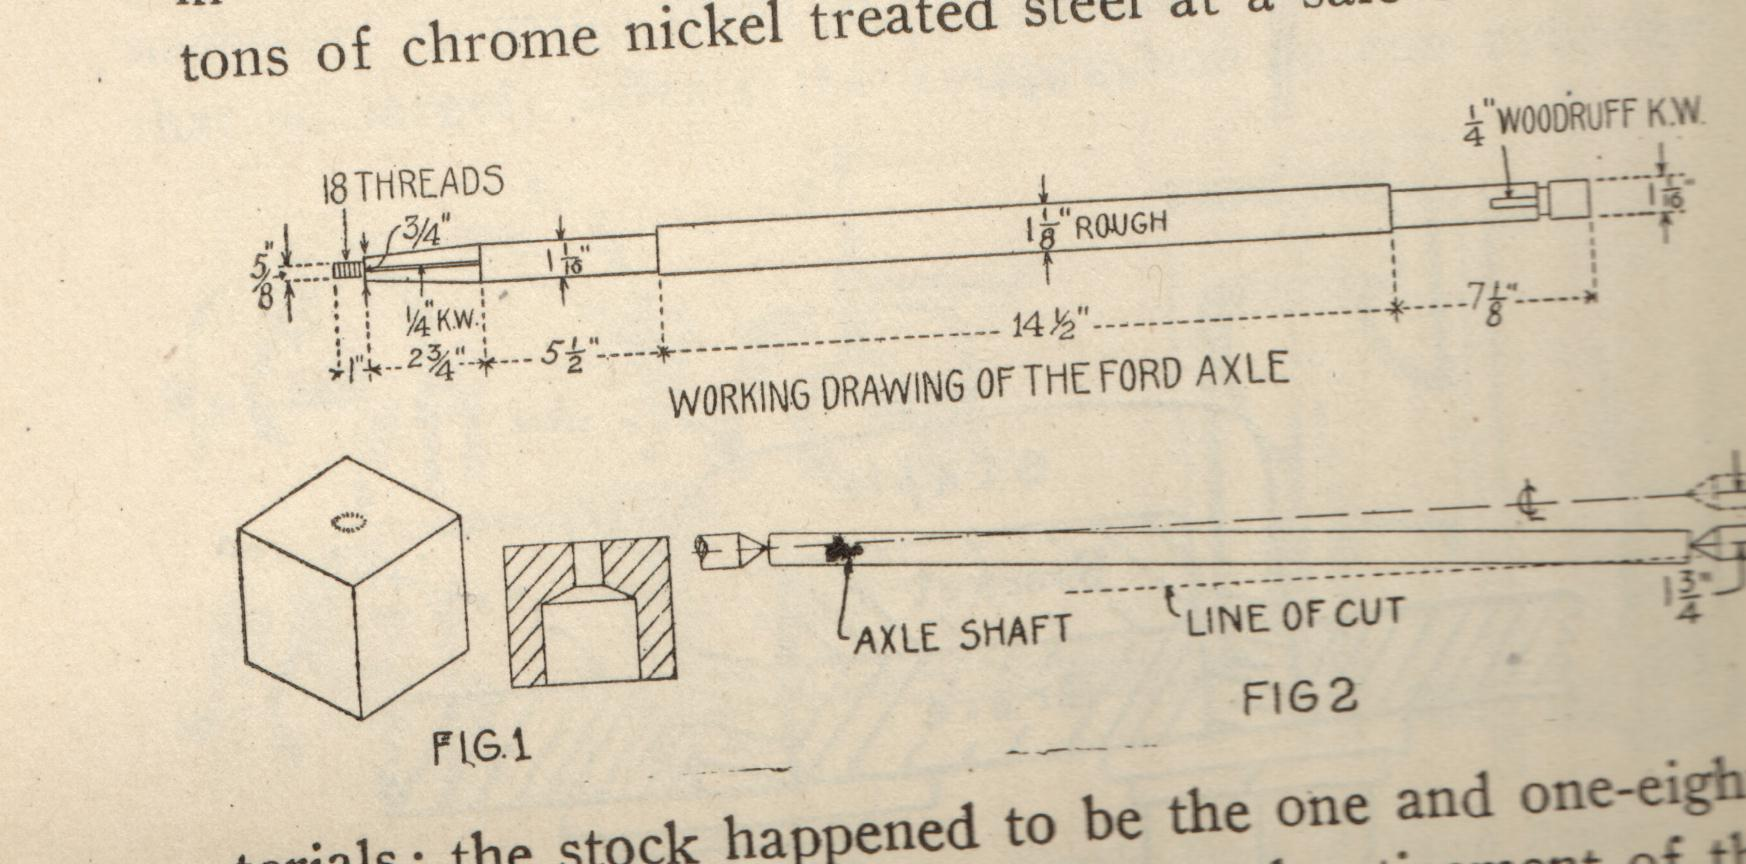 Working drawing of the Ford axle